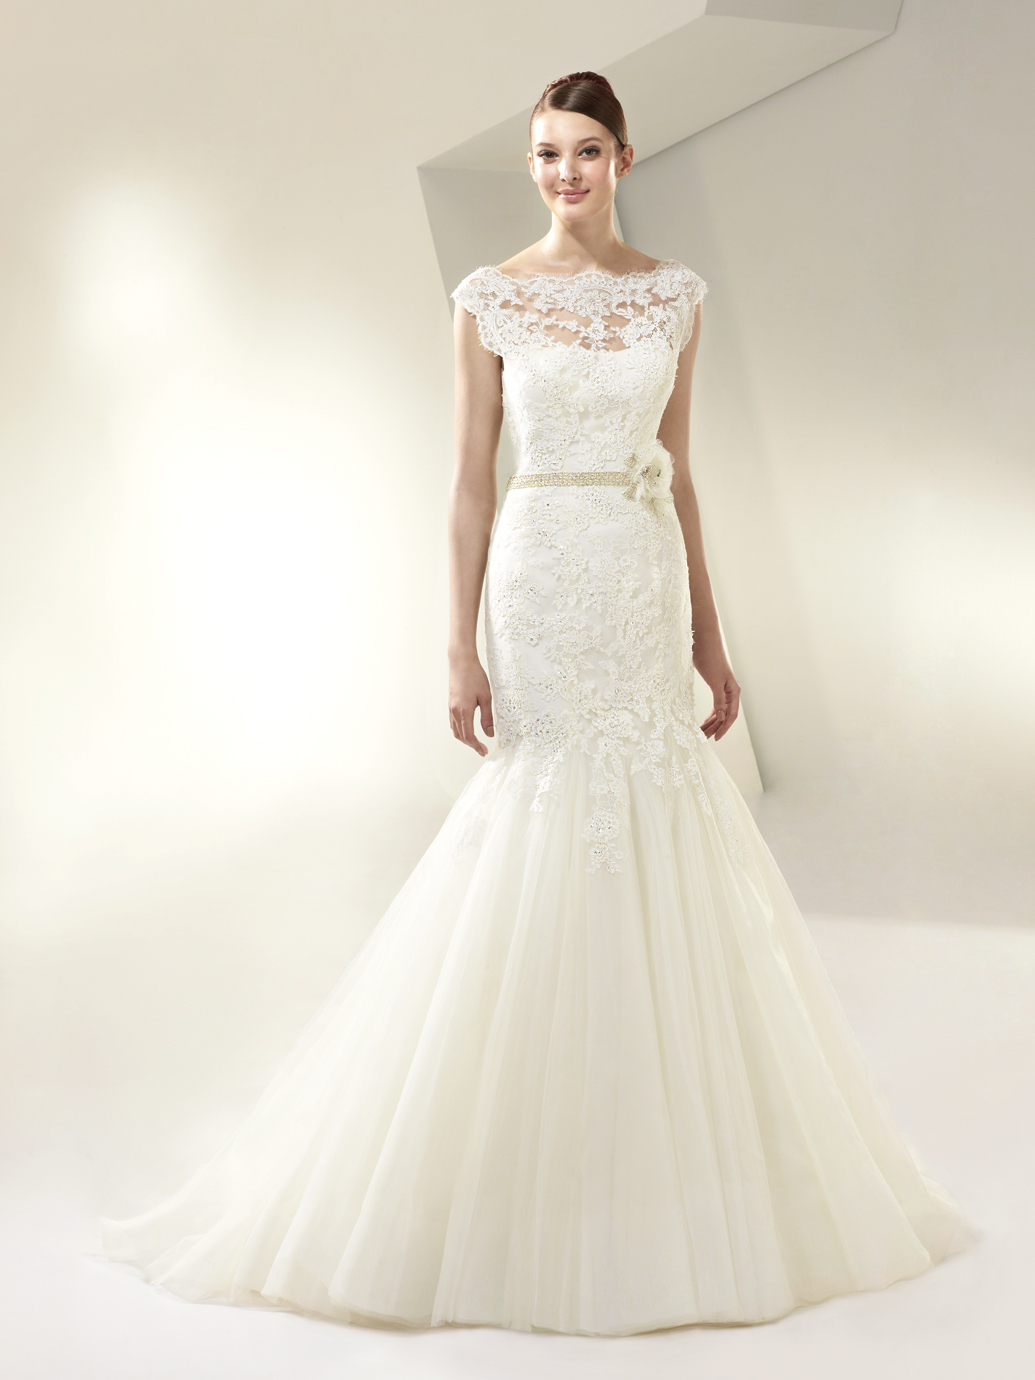 THE BEST GOWNS FROM THE MOST INDEMAND WEDDING DRESS DESIGNERS - Wedding Dress Stores Indianapolis